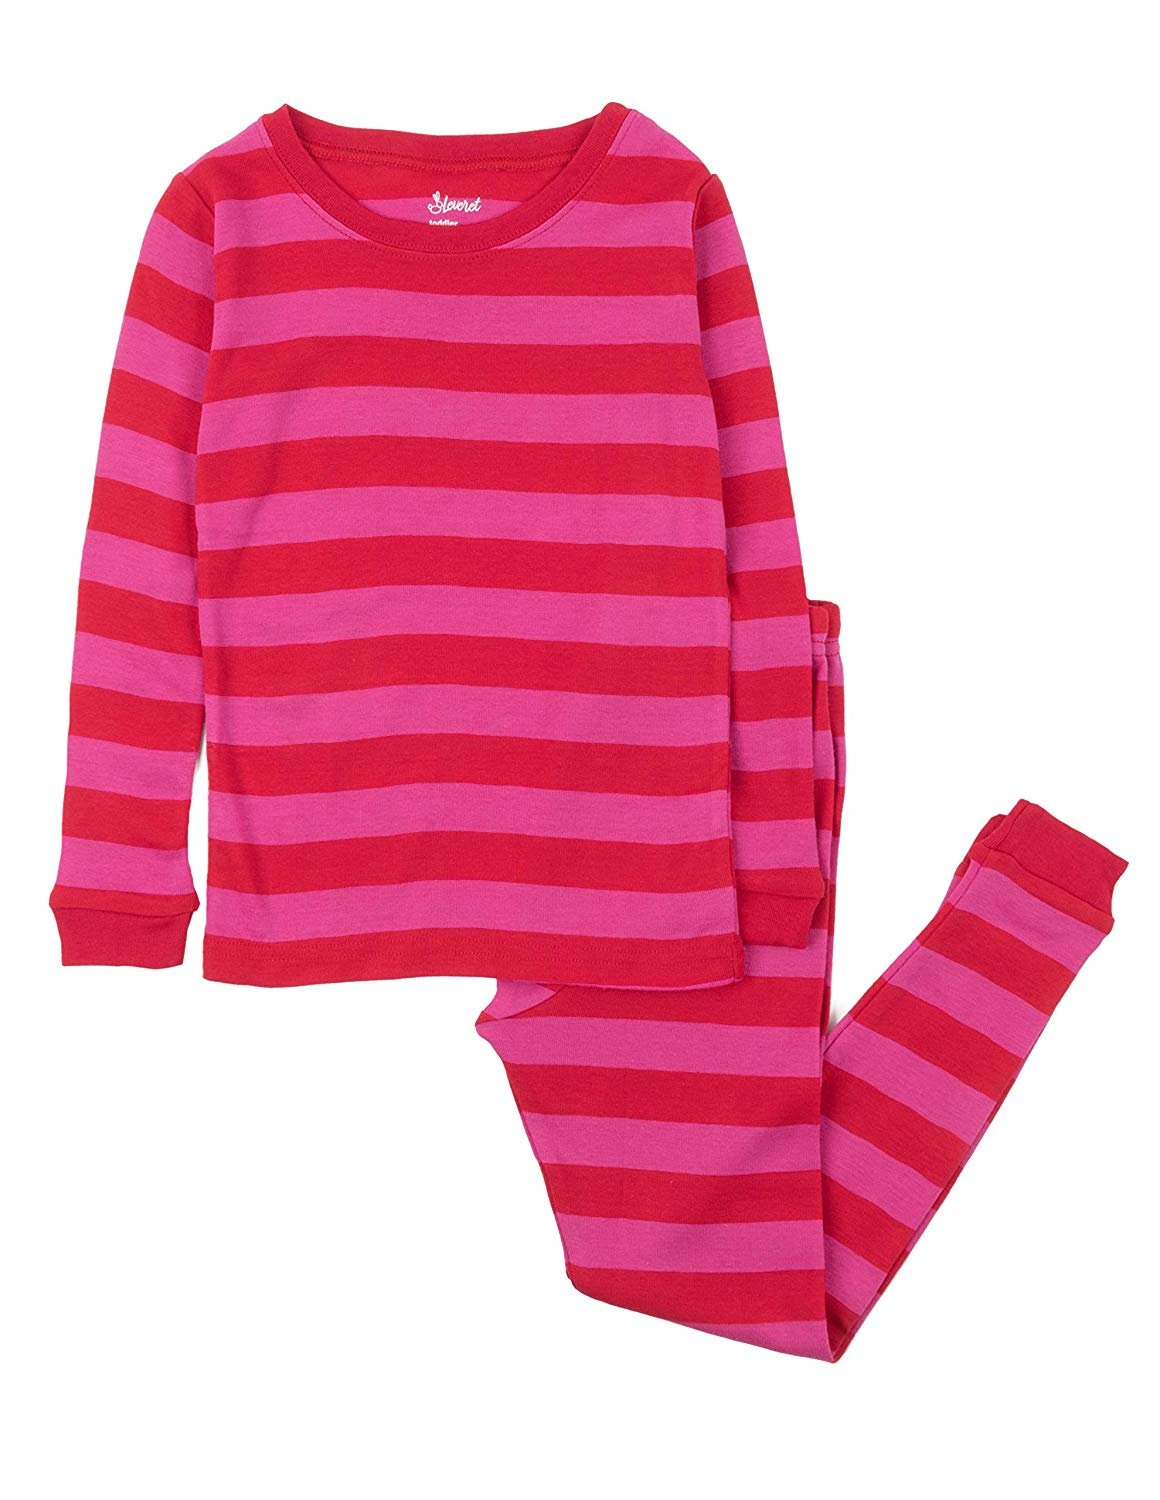 Leveret Striped Kids & Toddler Girls Pajamas 2 Piece Pjs Set 100% Cotton (Size 12-18 Months, Red & Pink)